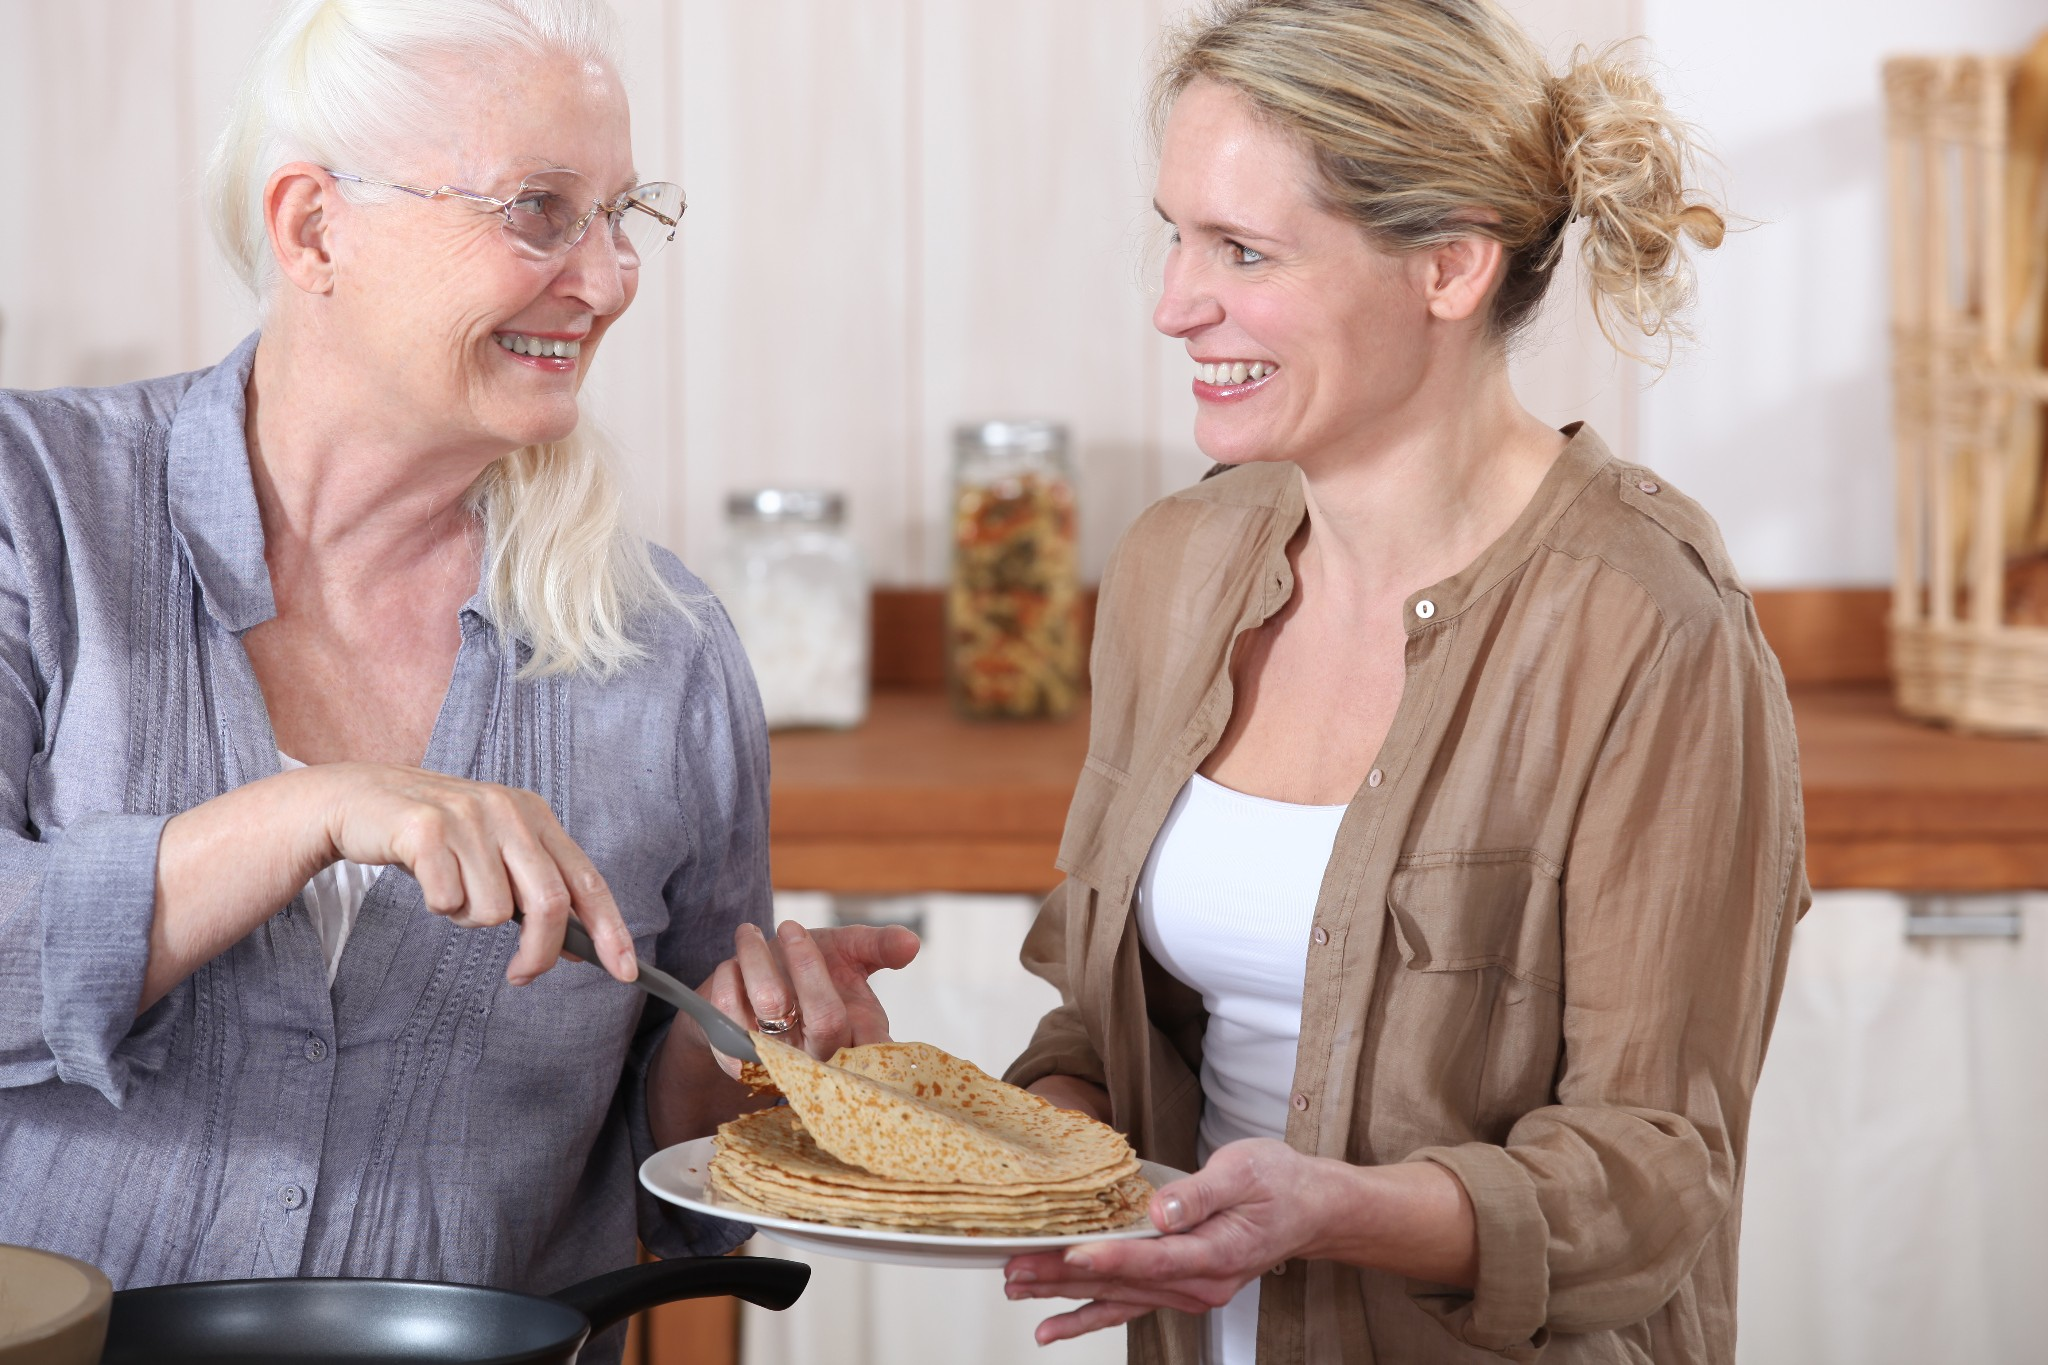 A Good Meal Provides More than Nutrition for Seniors